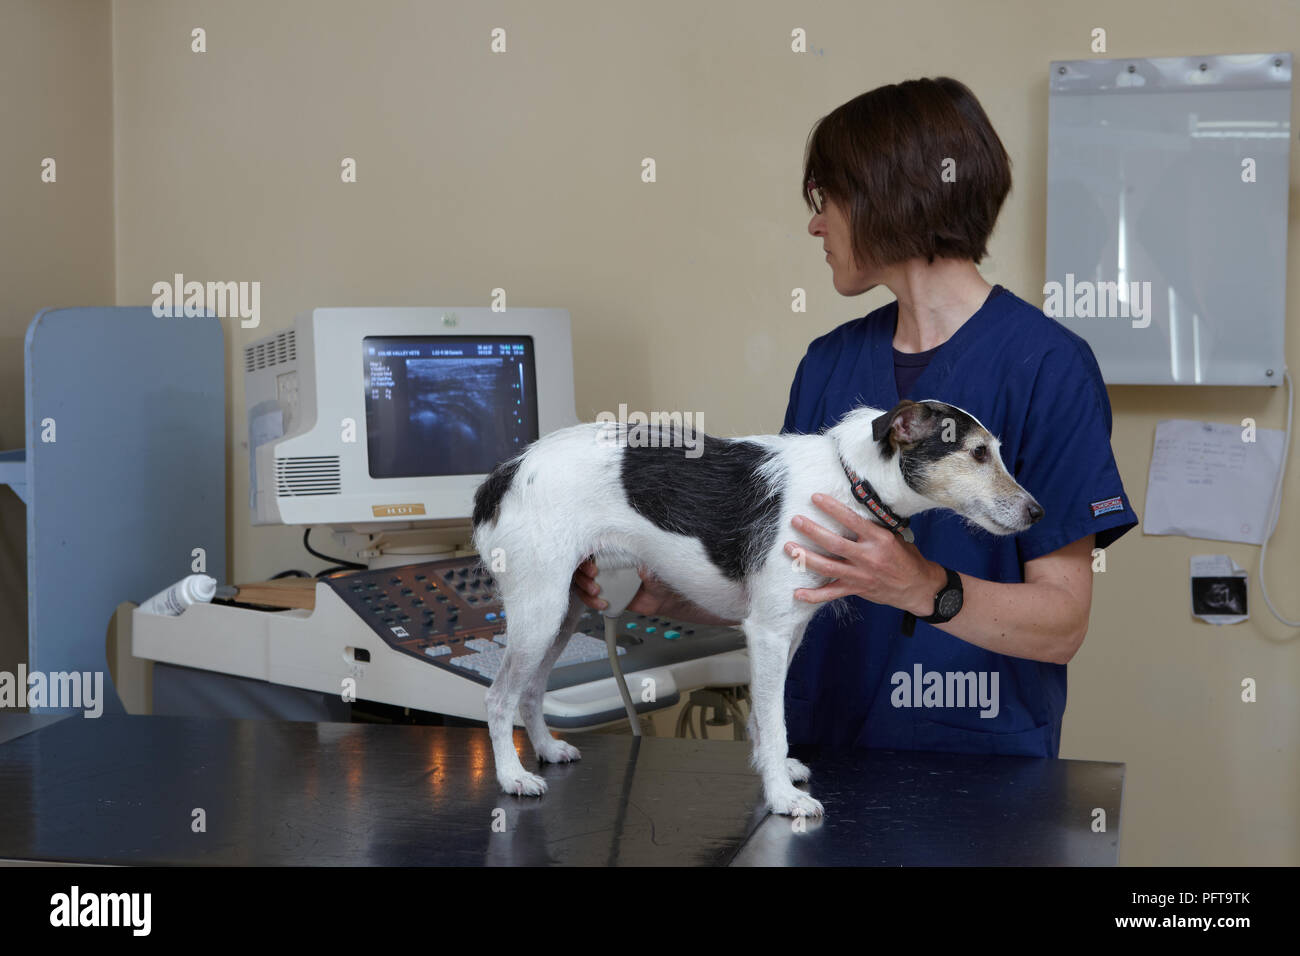 Jack Russell having ultrasound scan by veterinary nurse in veterinary surgery - Stock Image